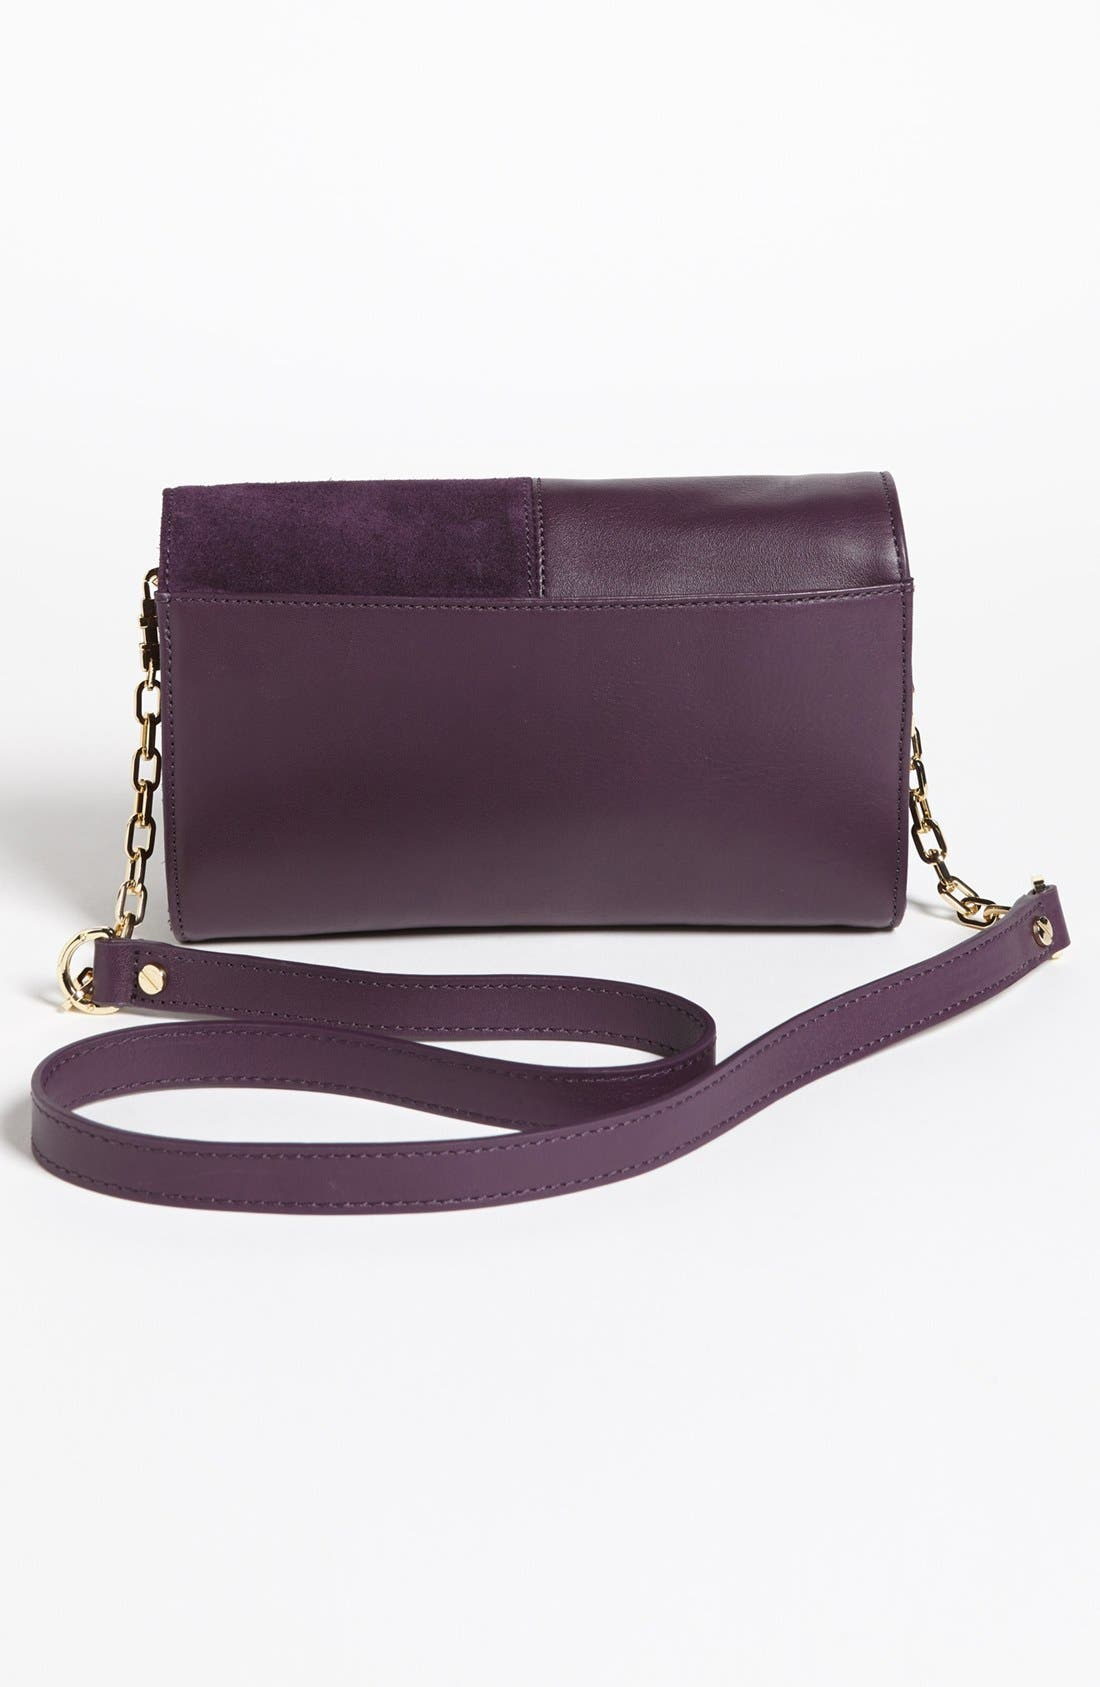 Alternate Image 3  - Tory Burch 'Natalie' Crossbody Bag